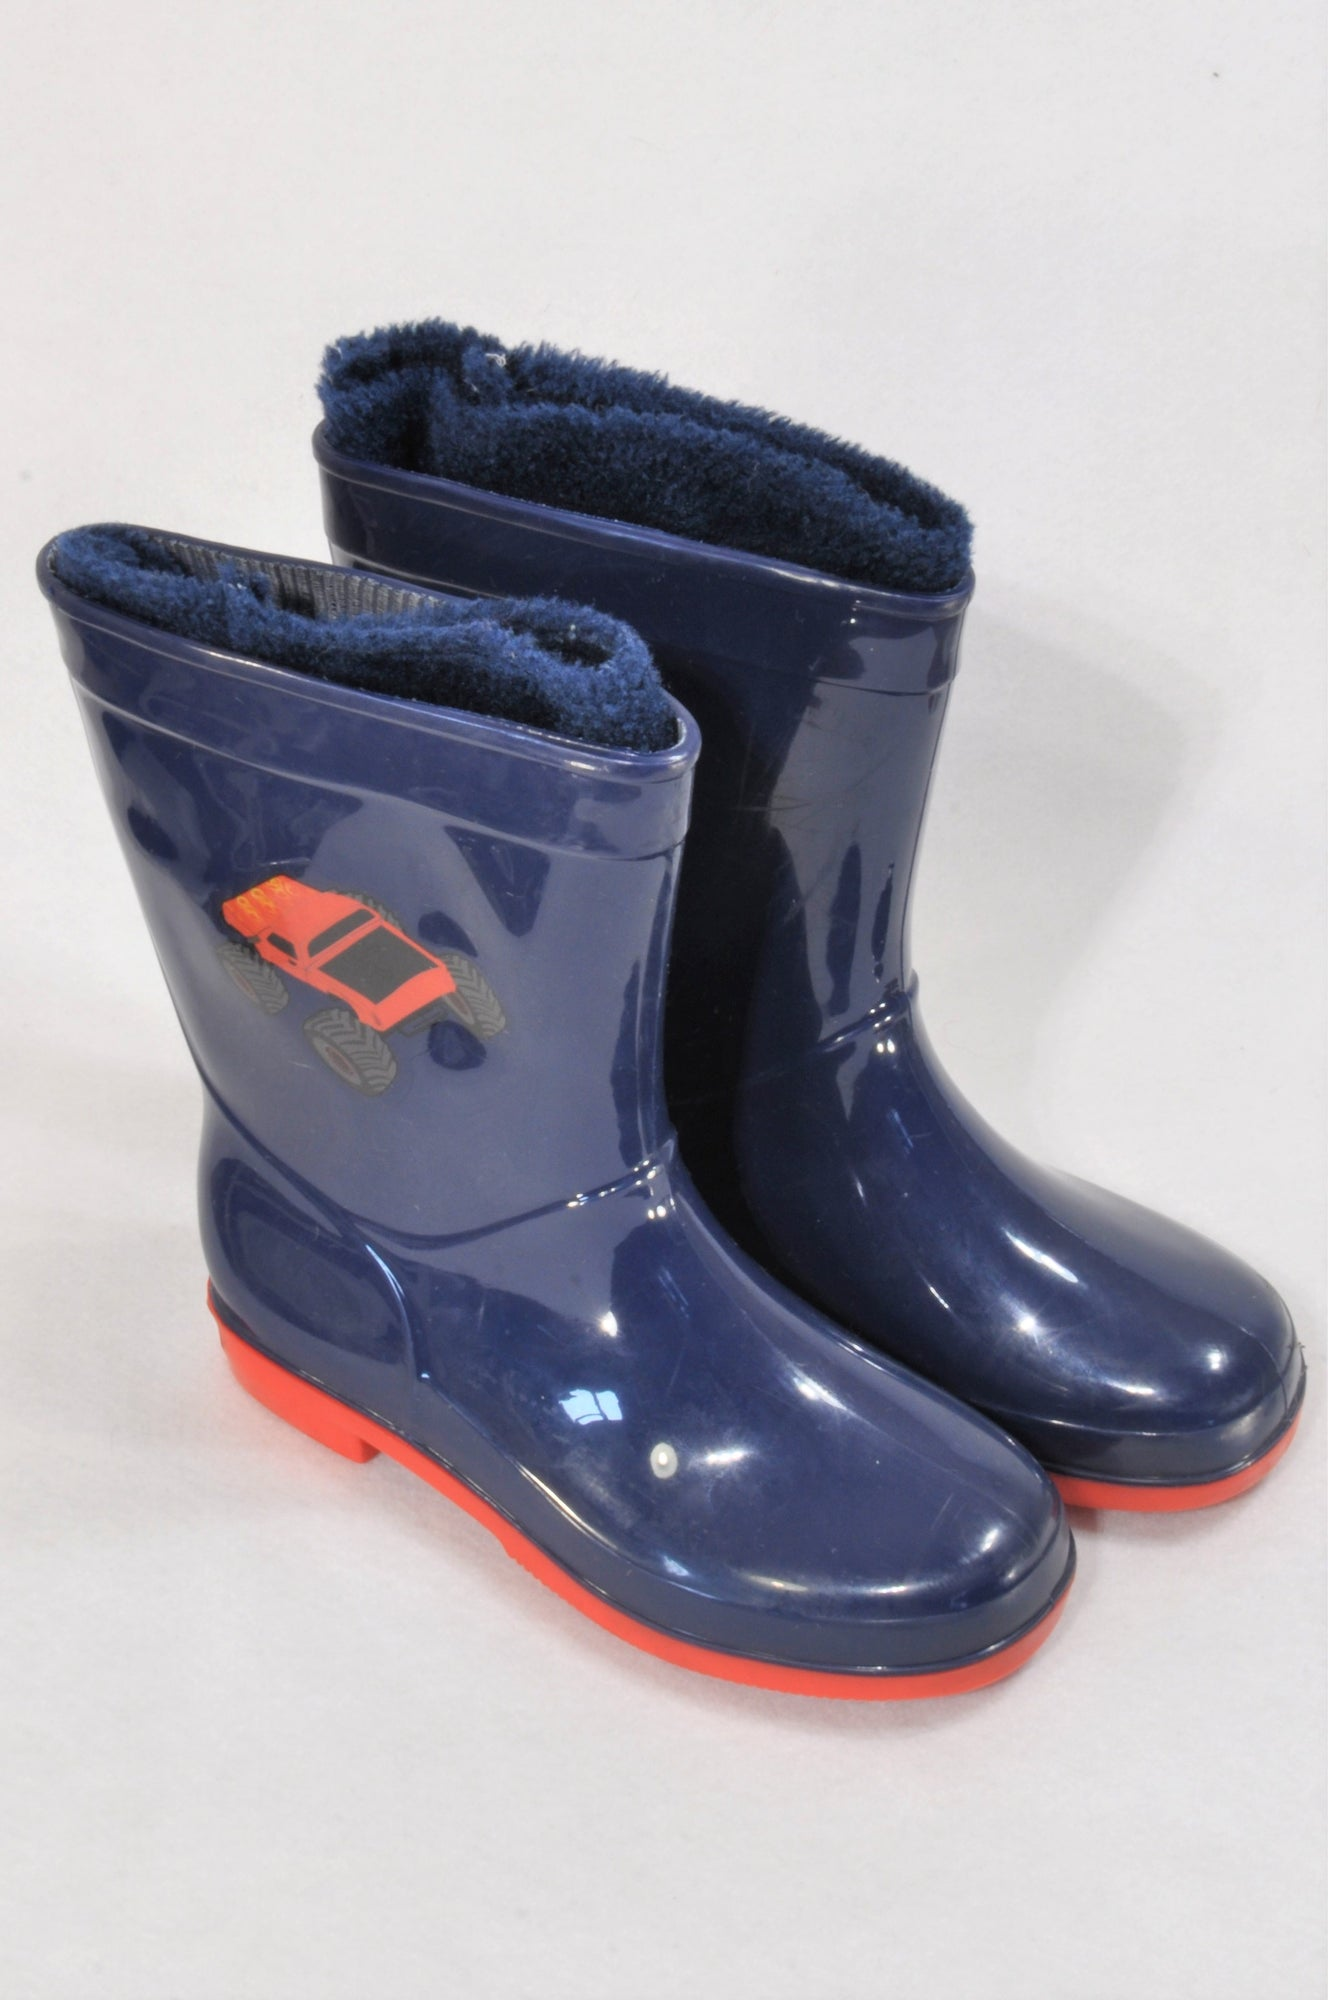 Size 12 Navy Lined Truck Rain Boots Unisex 5-6 years – Once More baac28395339